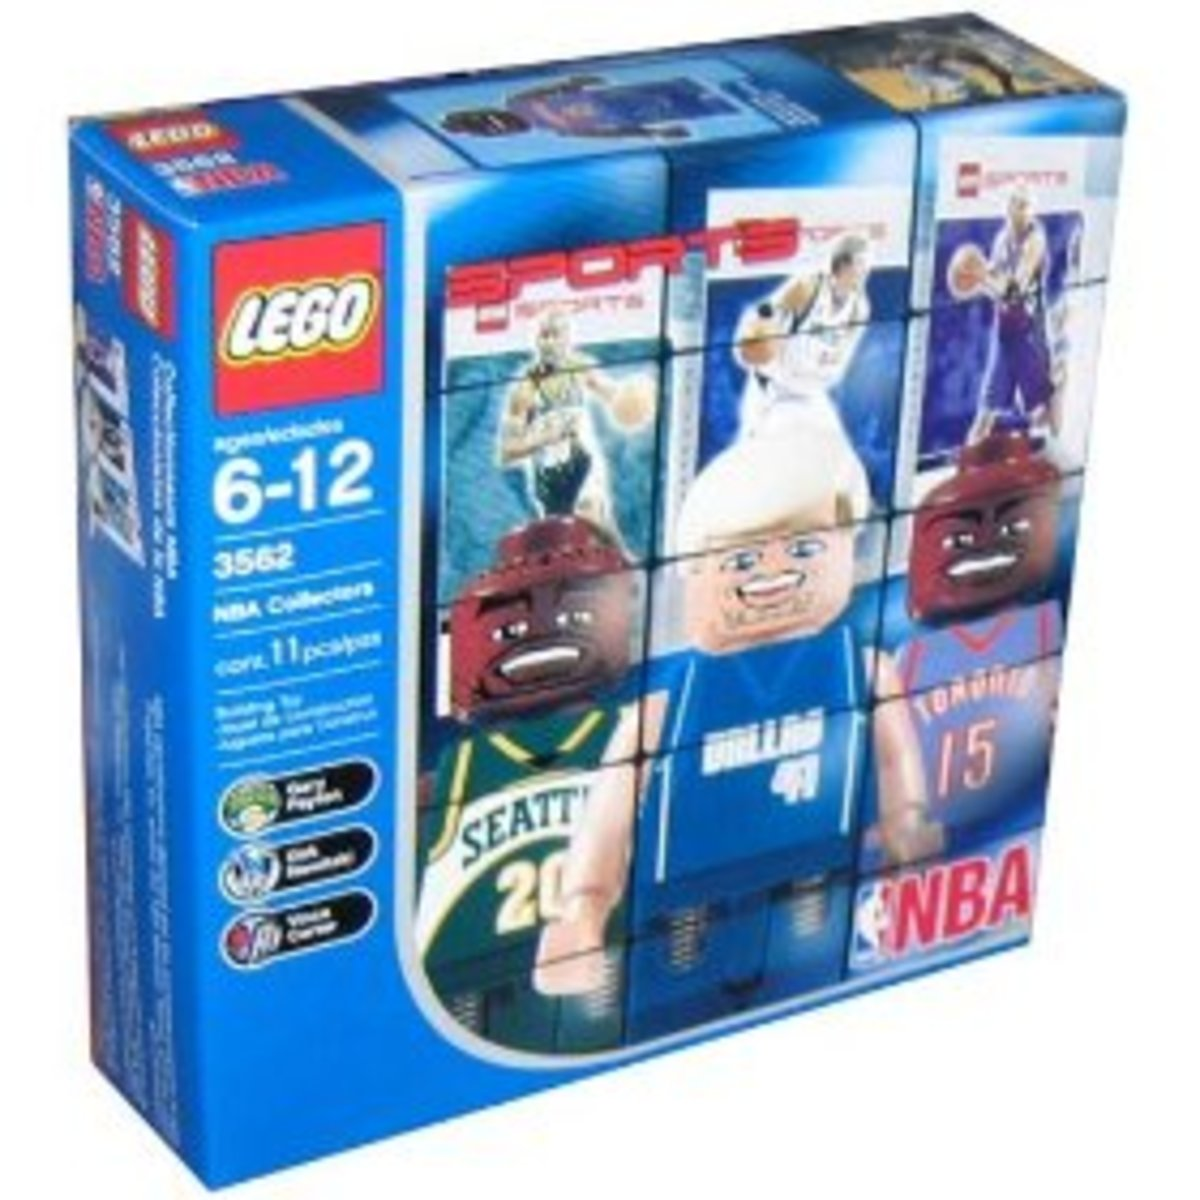 Lego NBA Collectors Set #3 in its box